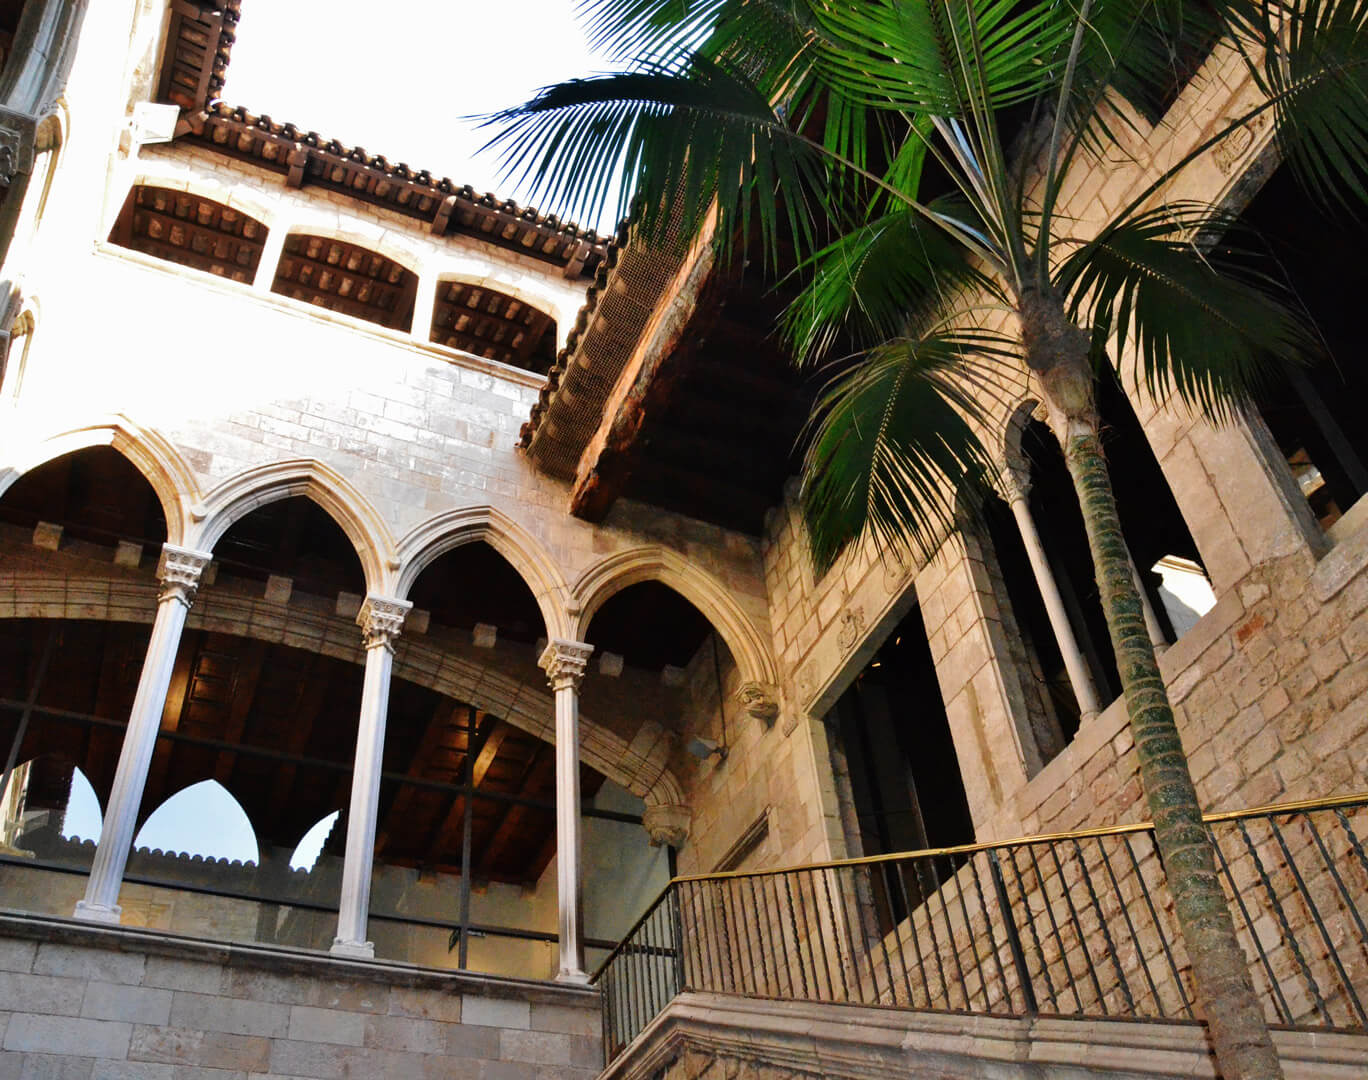 Barcelona Free Museums Day: a complete guide to discover them all